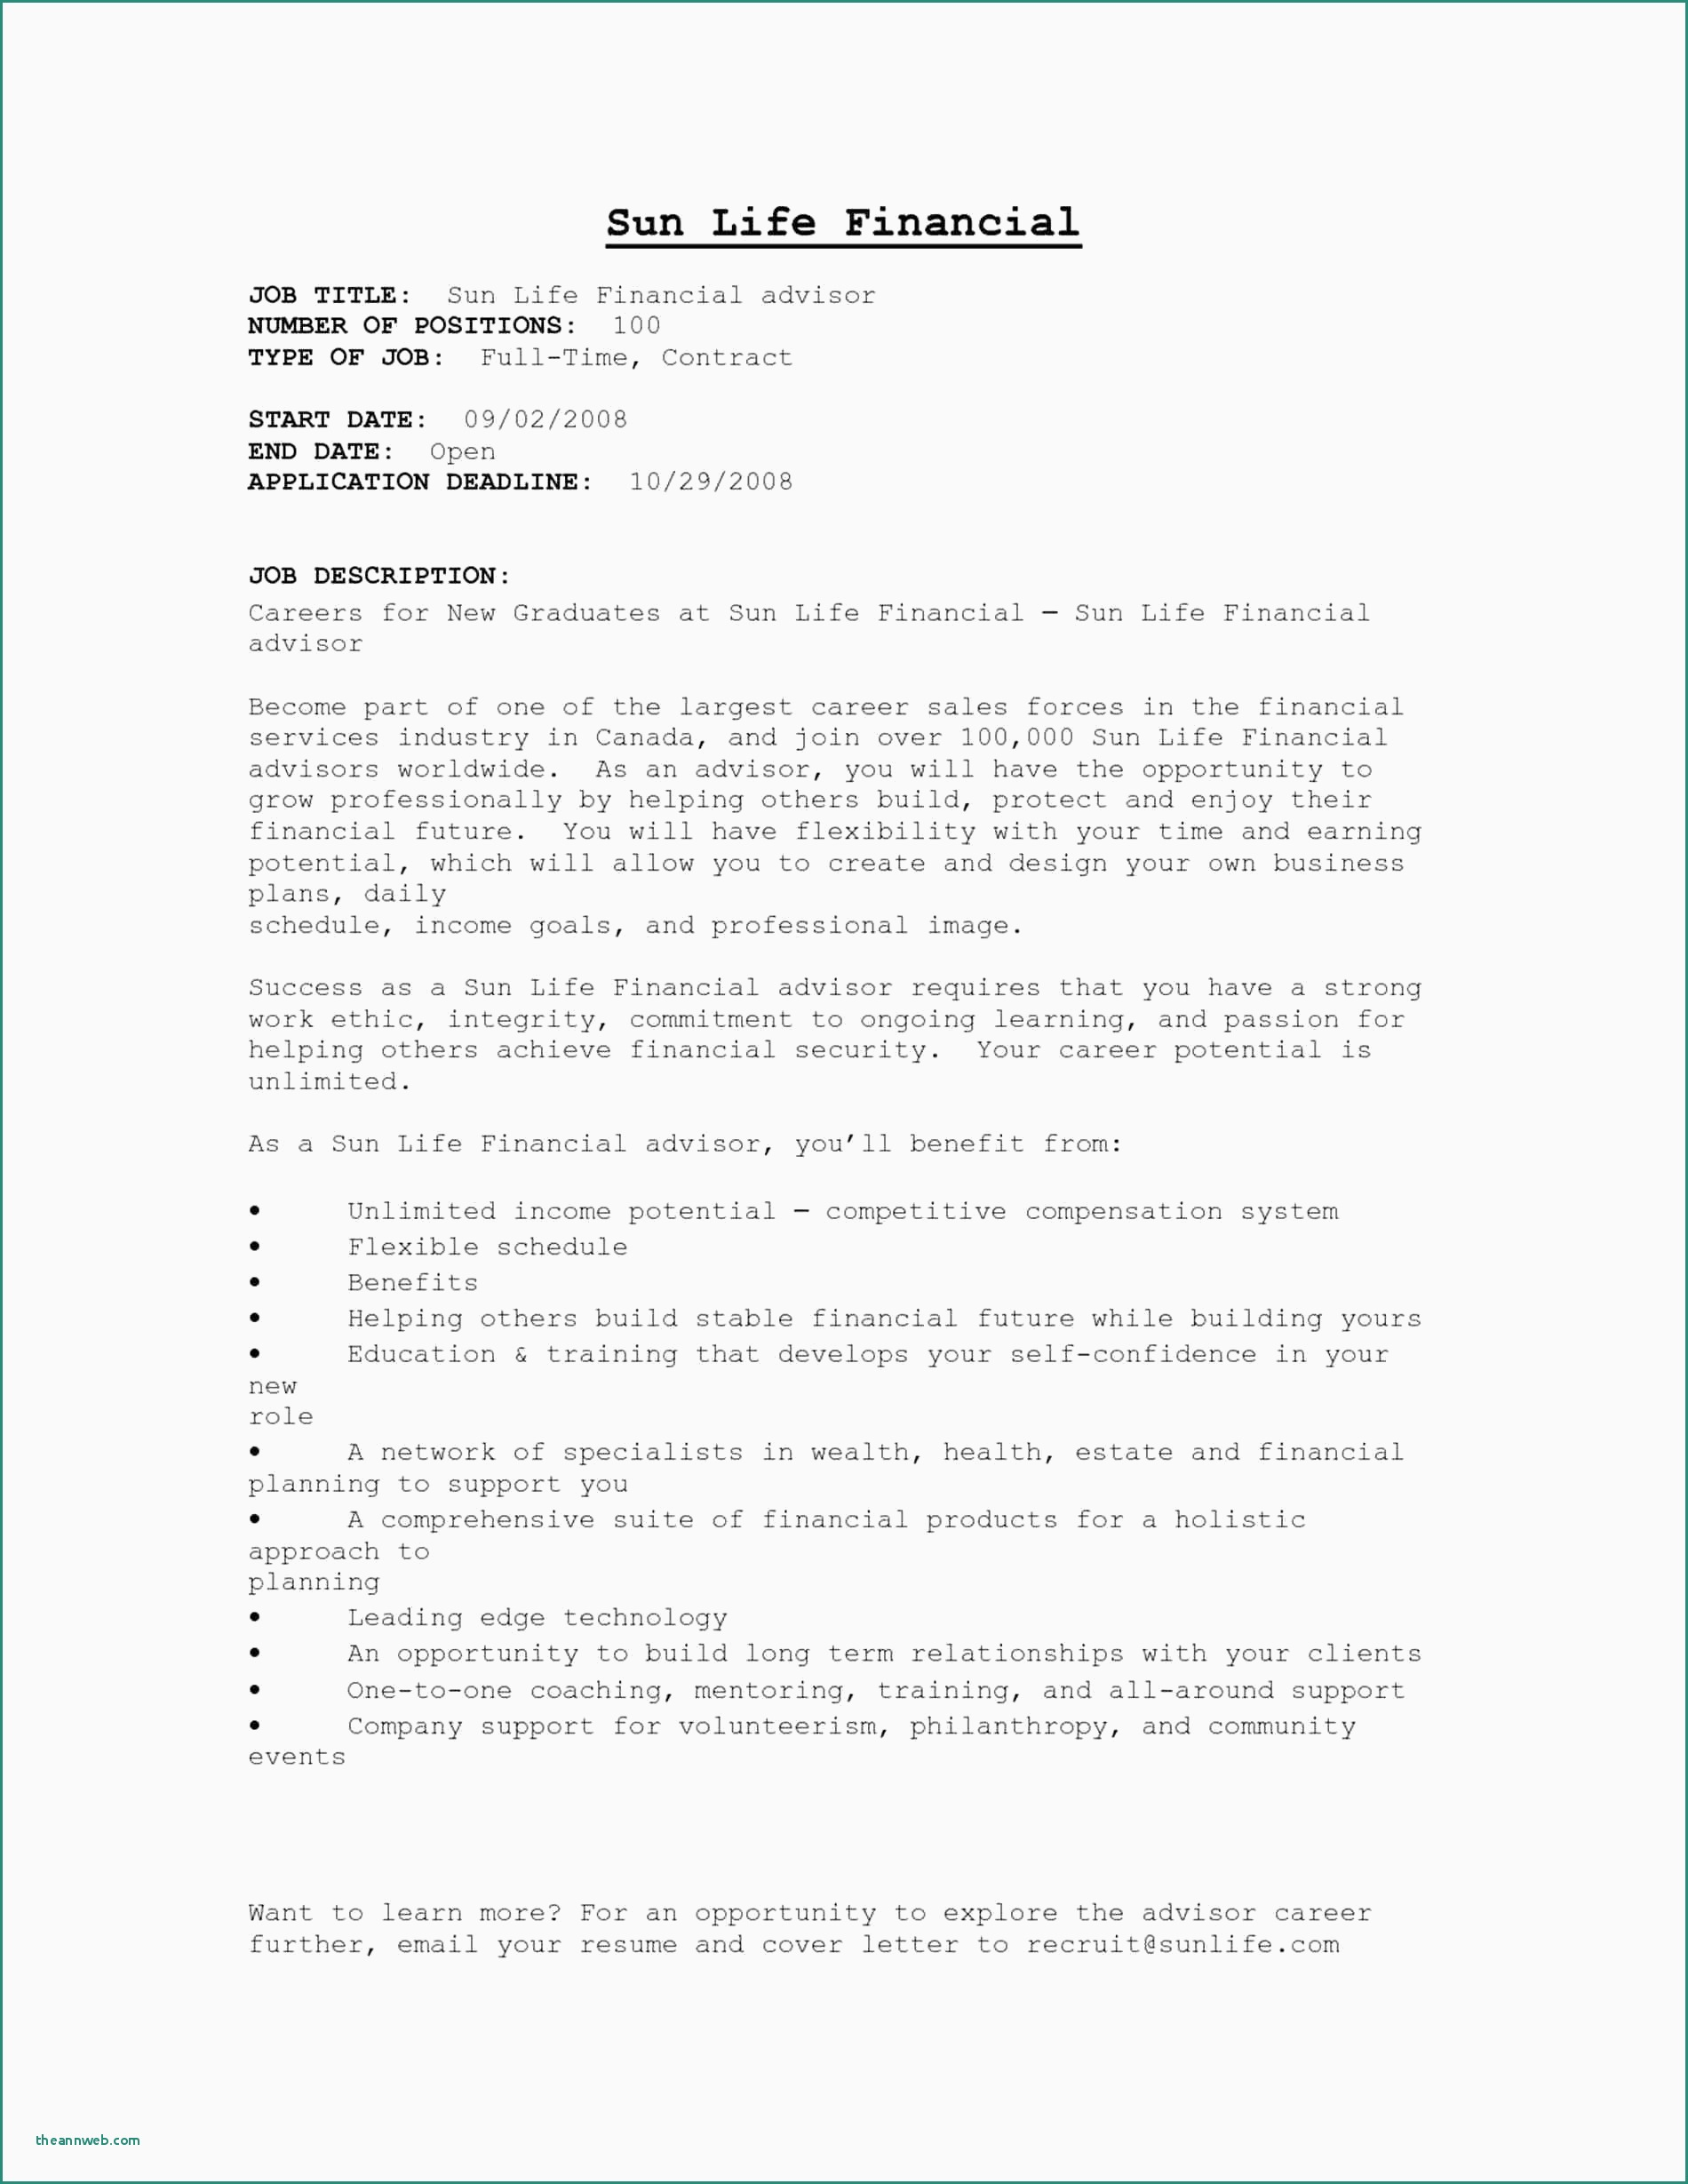 Packer Job Description Resume - Cover Letter for Packer Position with No Experience 57 Picker Packer